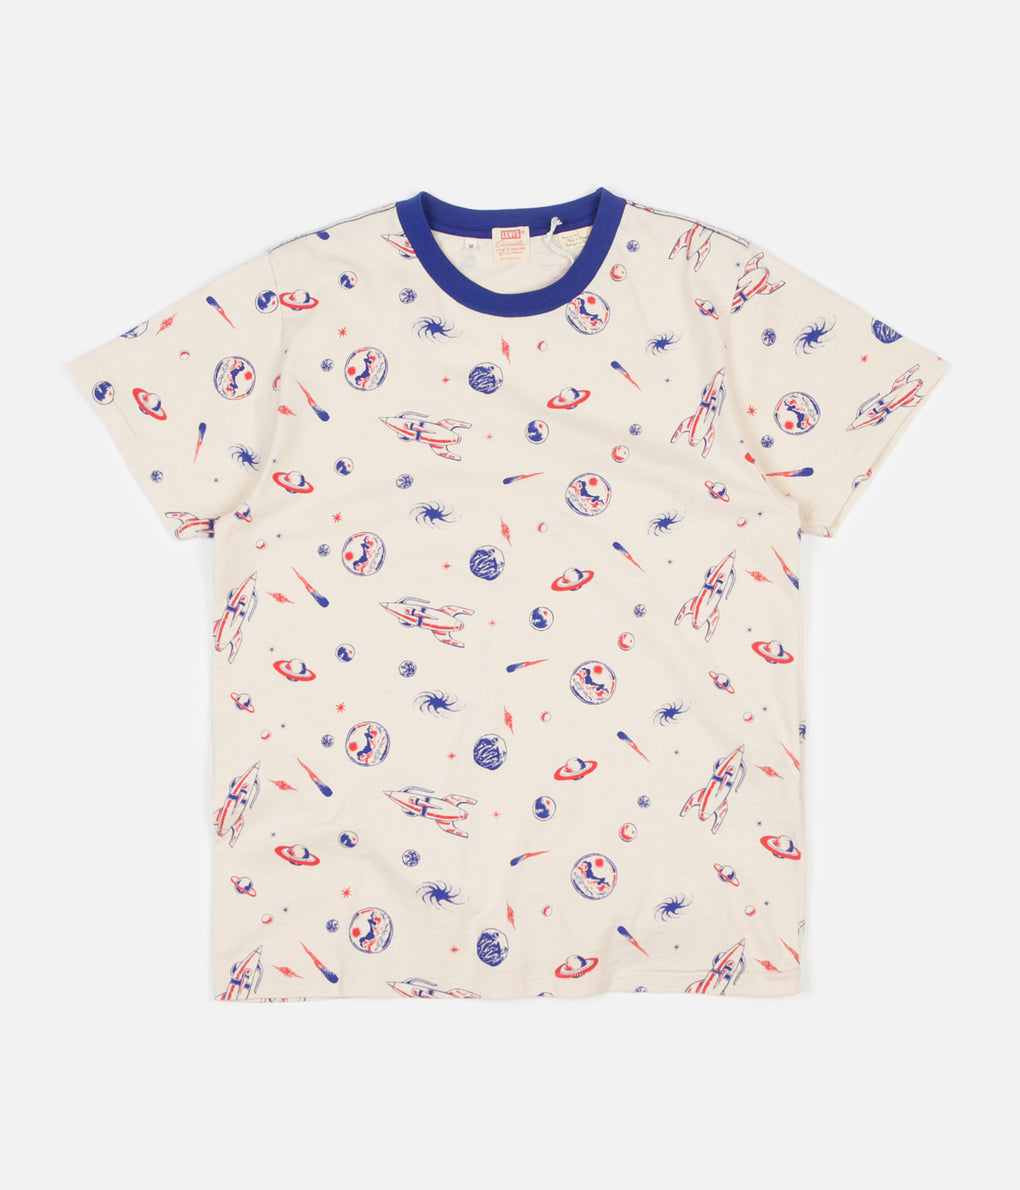 Levi's® Vintage Clothing Graphic T-Shirt - Spaced All Over / Creme Brulee